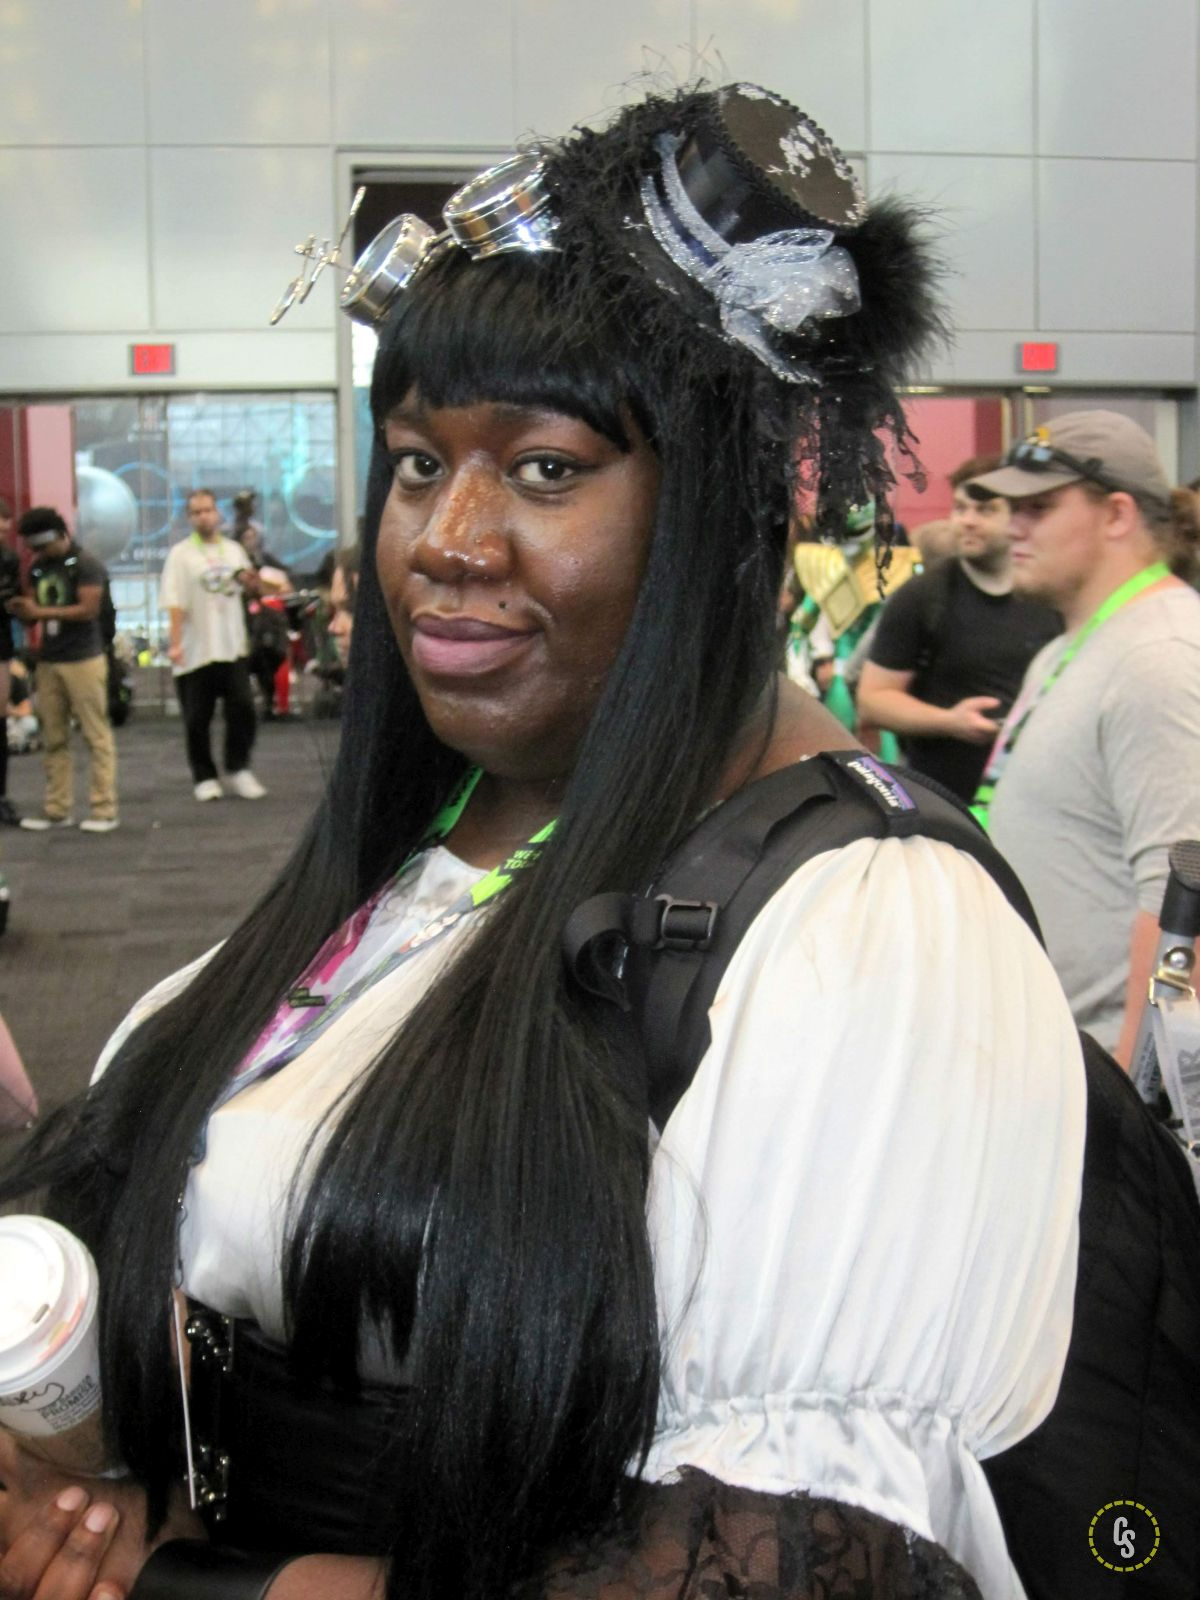 nycc183_089